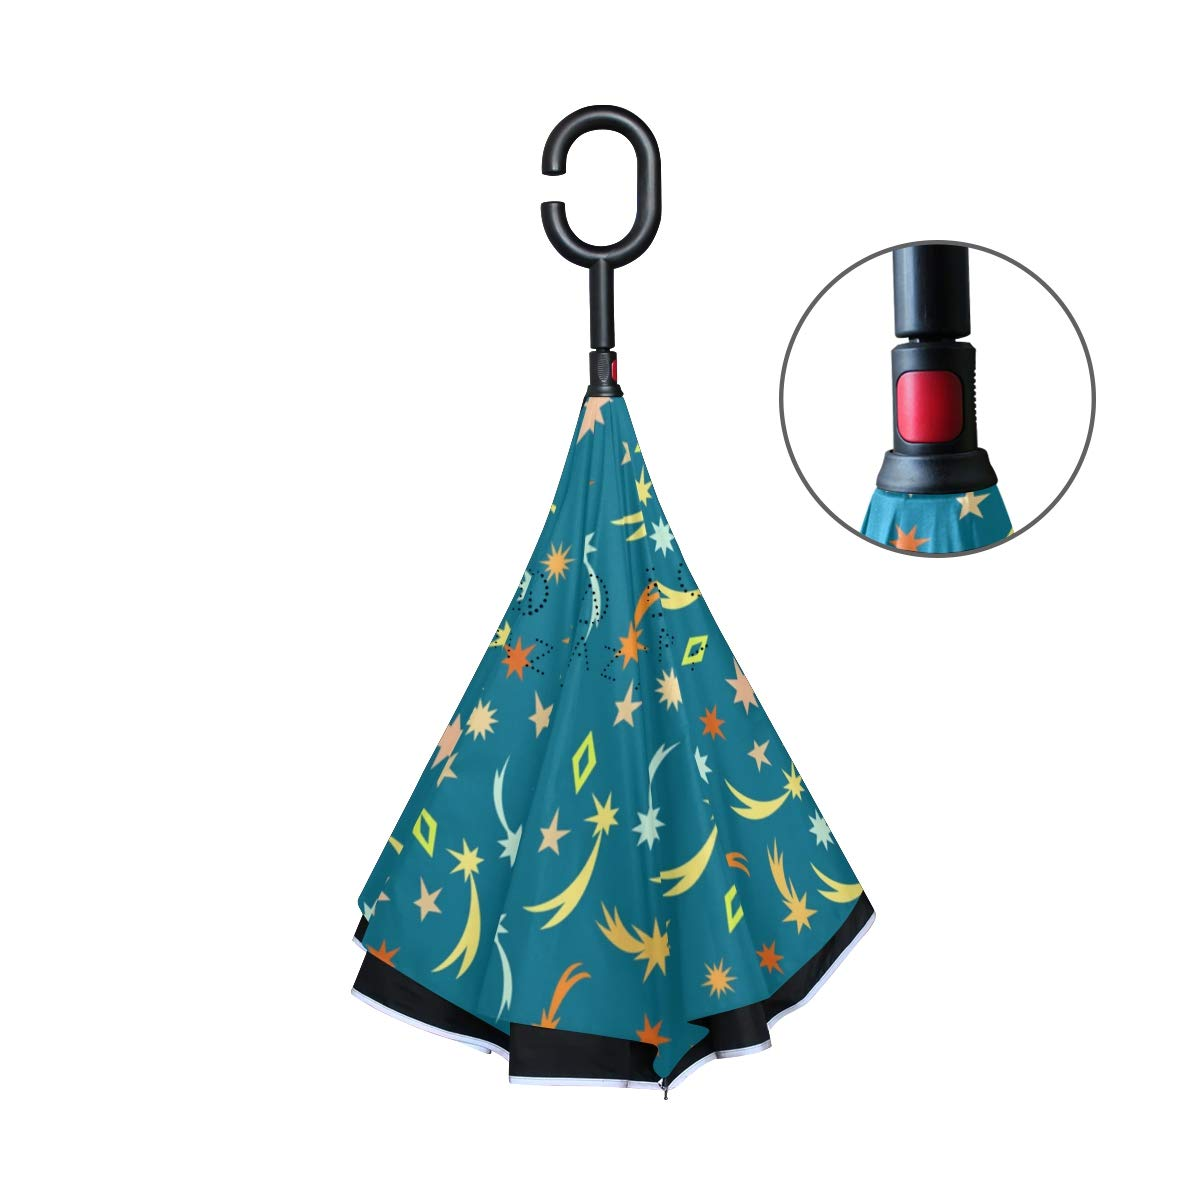 senya Double Layer Inverted Umbrellas Cute Meteor Stars Pattern Folding Umbrella Windproof UV Protection for Car Use Rain Outdoor With C-Shaped Handle by senya (Image #3)